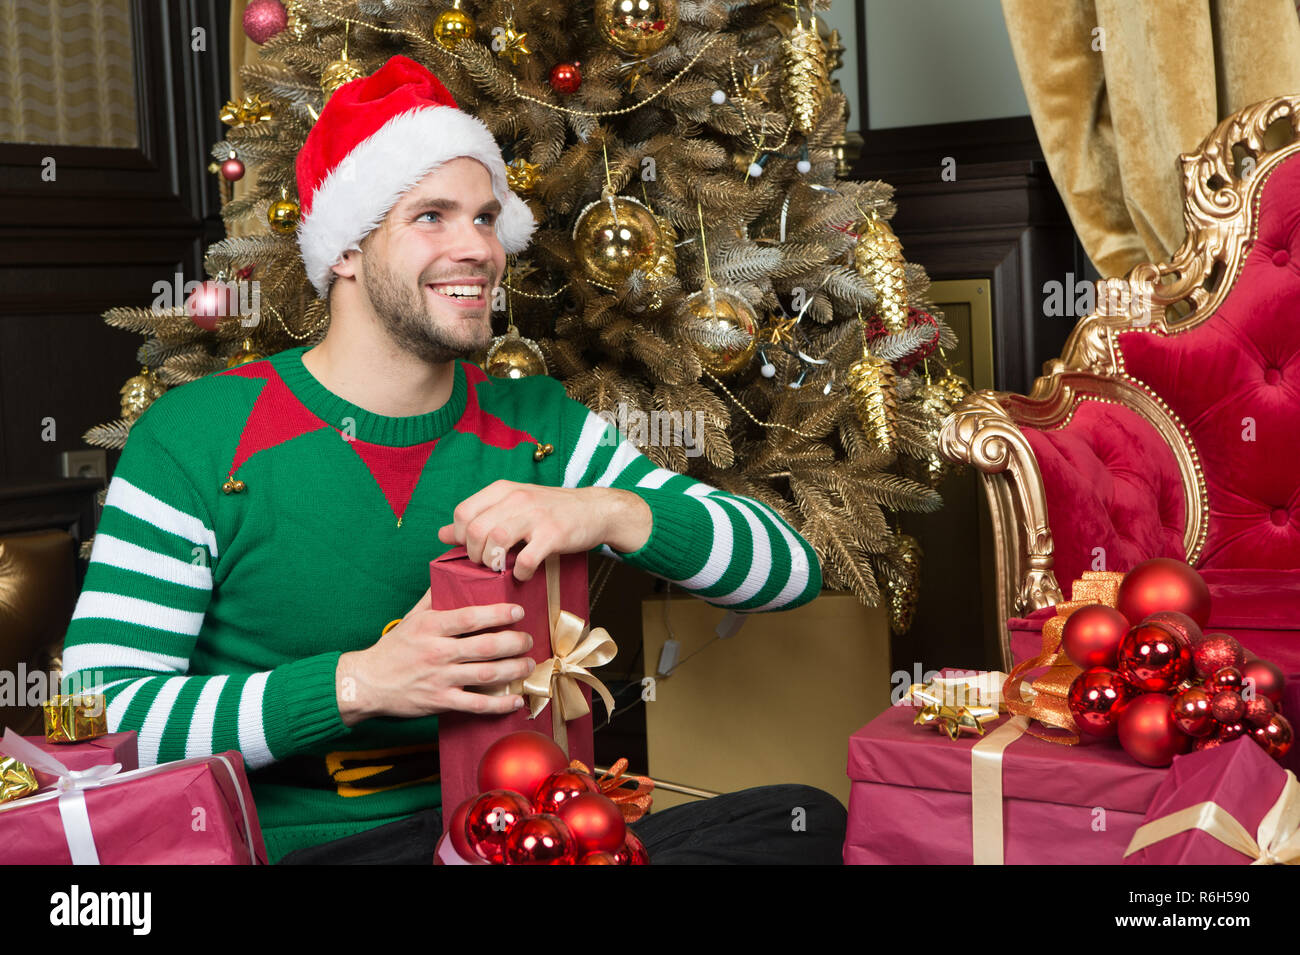 Opening Christmas present. Guy is celebrating Christmas at home. Man in santa hat hold Christmas presents. Happy man with xmas gift boxes. Delivery Christmas gifts. Indulge yourself in joy. Stock Photo